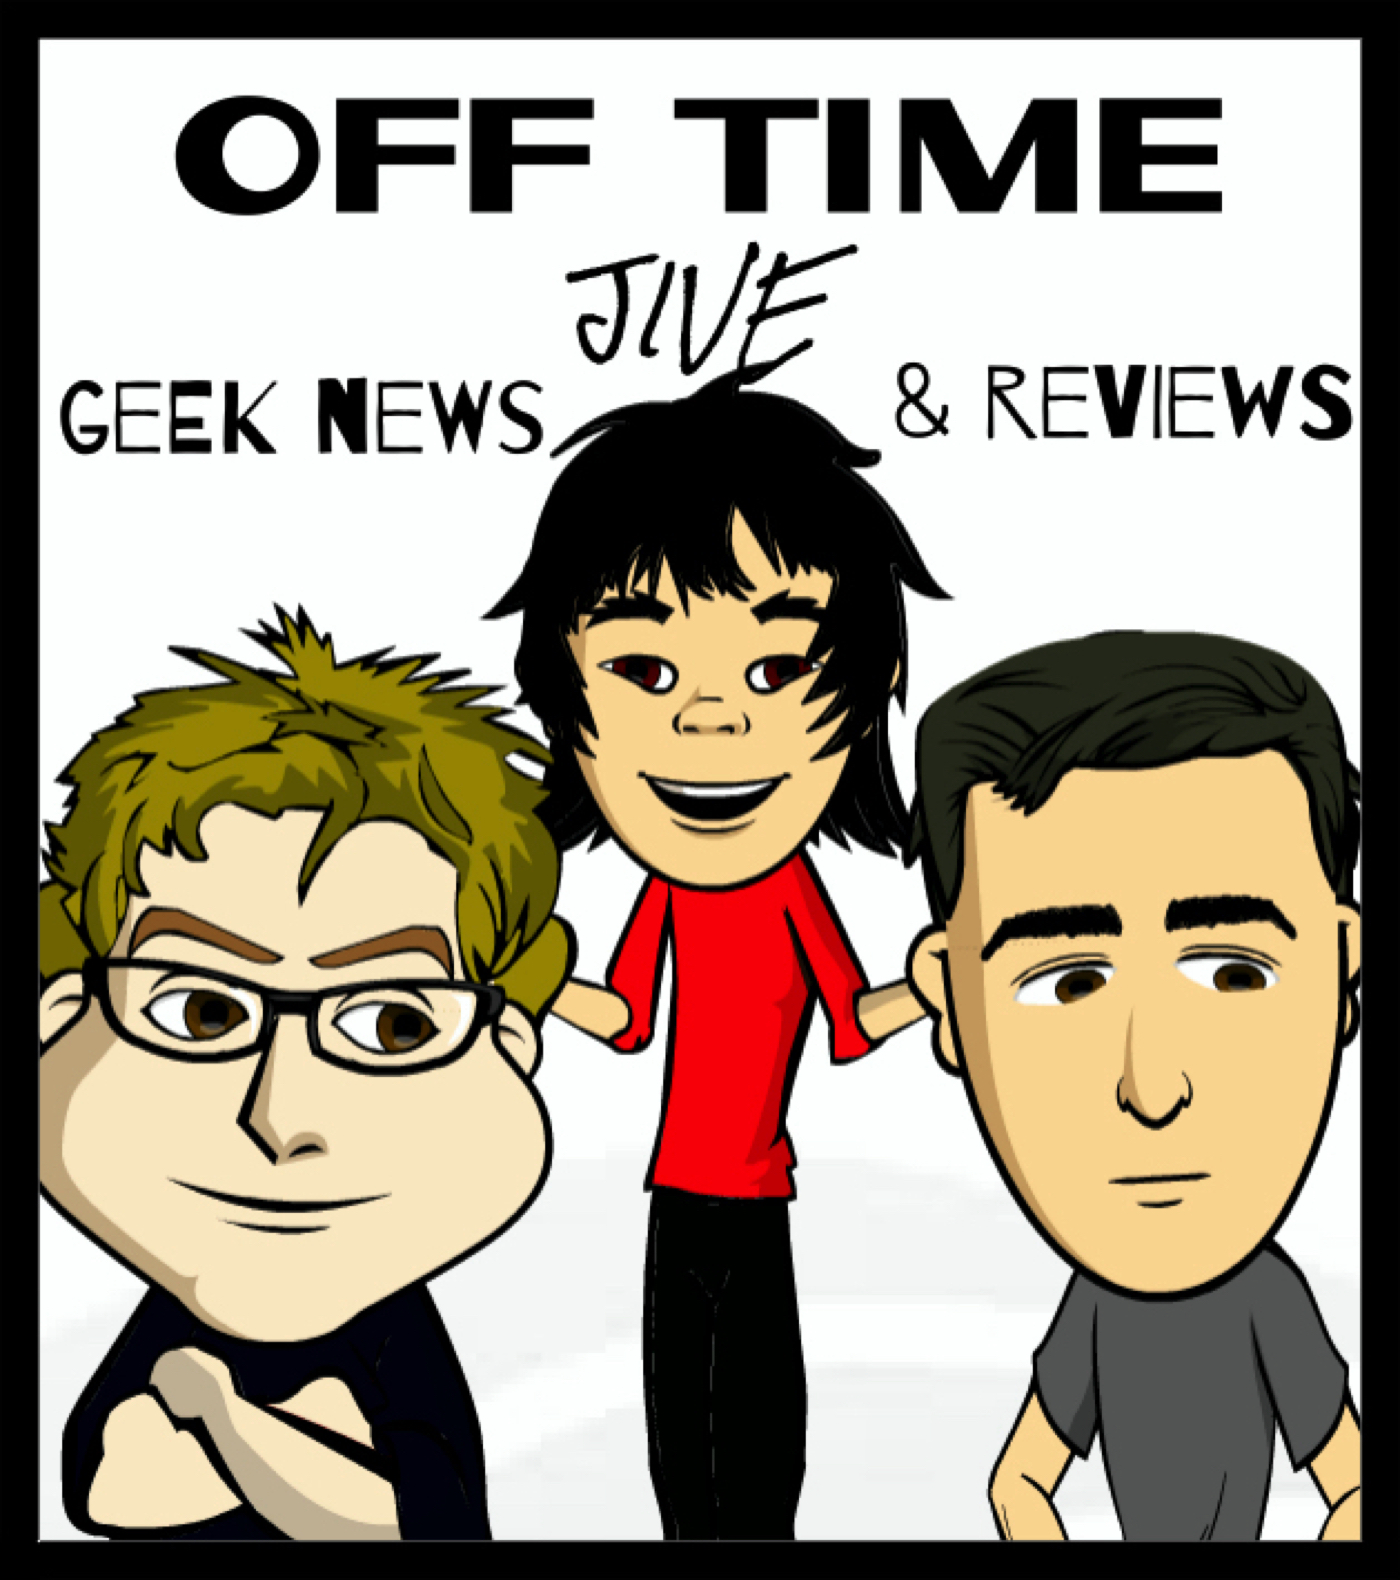 Off Time Jive - Geek News & Reviews